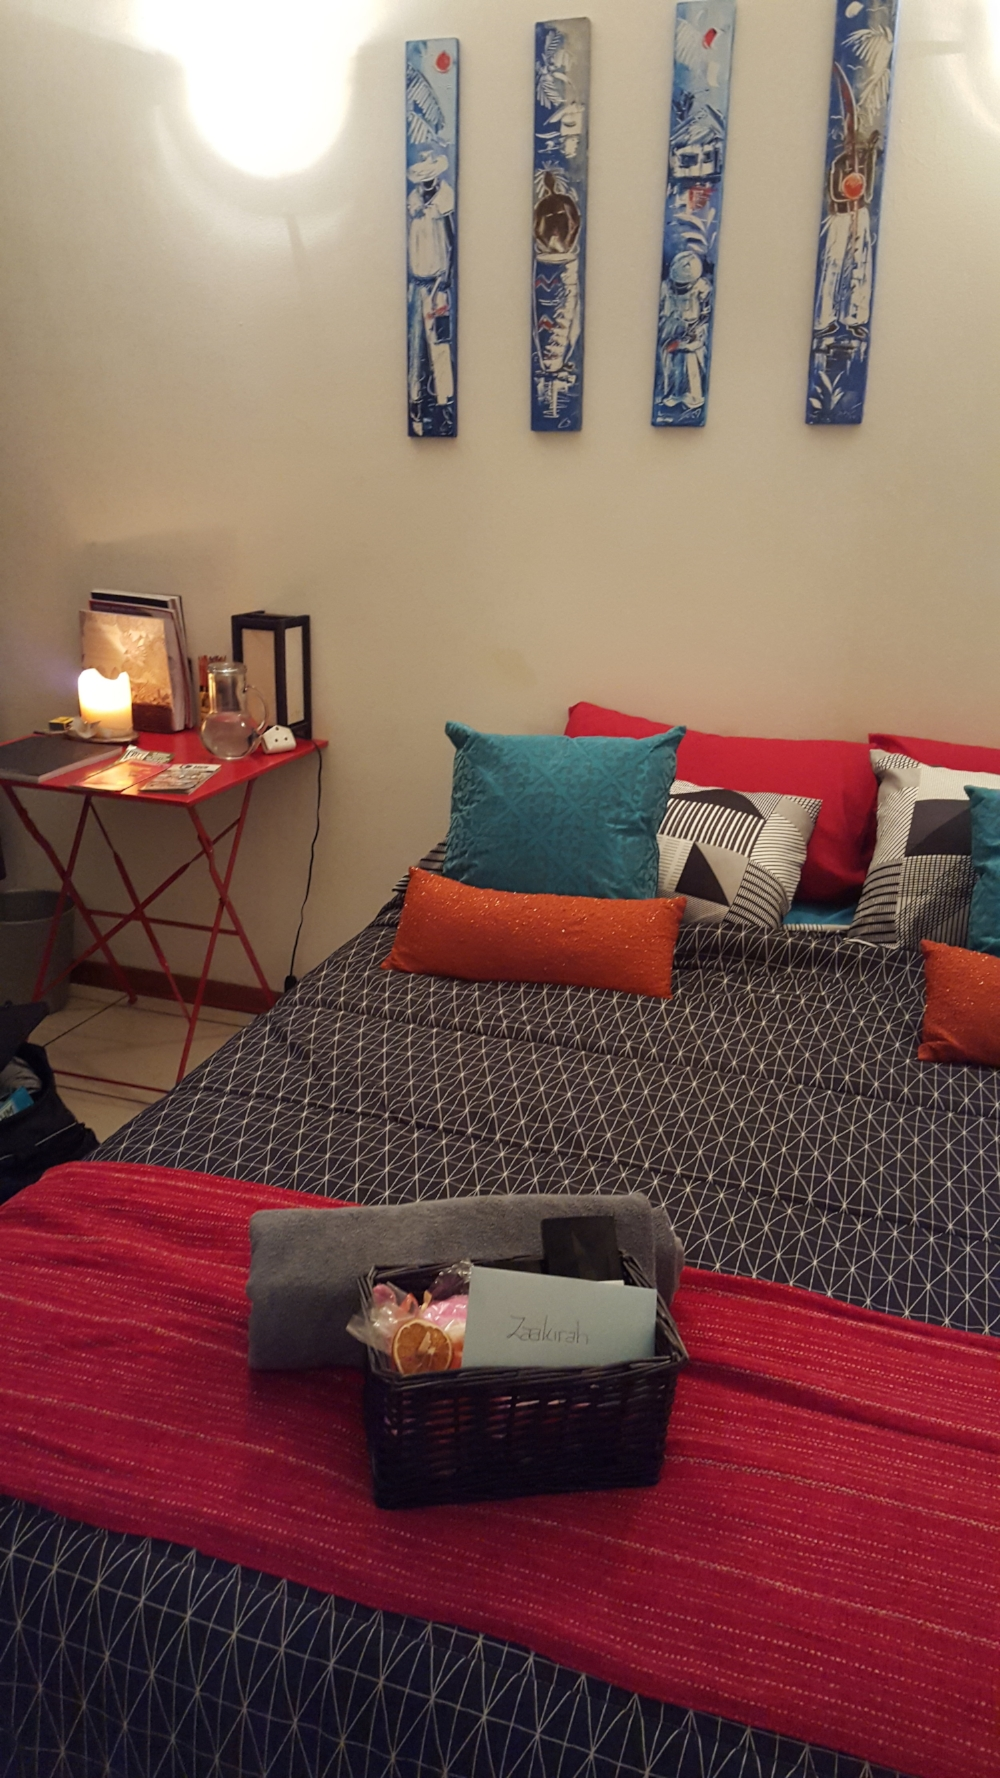 View of Bed and Nightstand | Johannesburg, South Africa | Zaakirah Nayyar